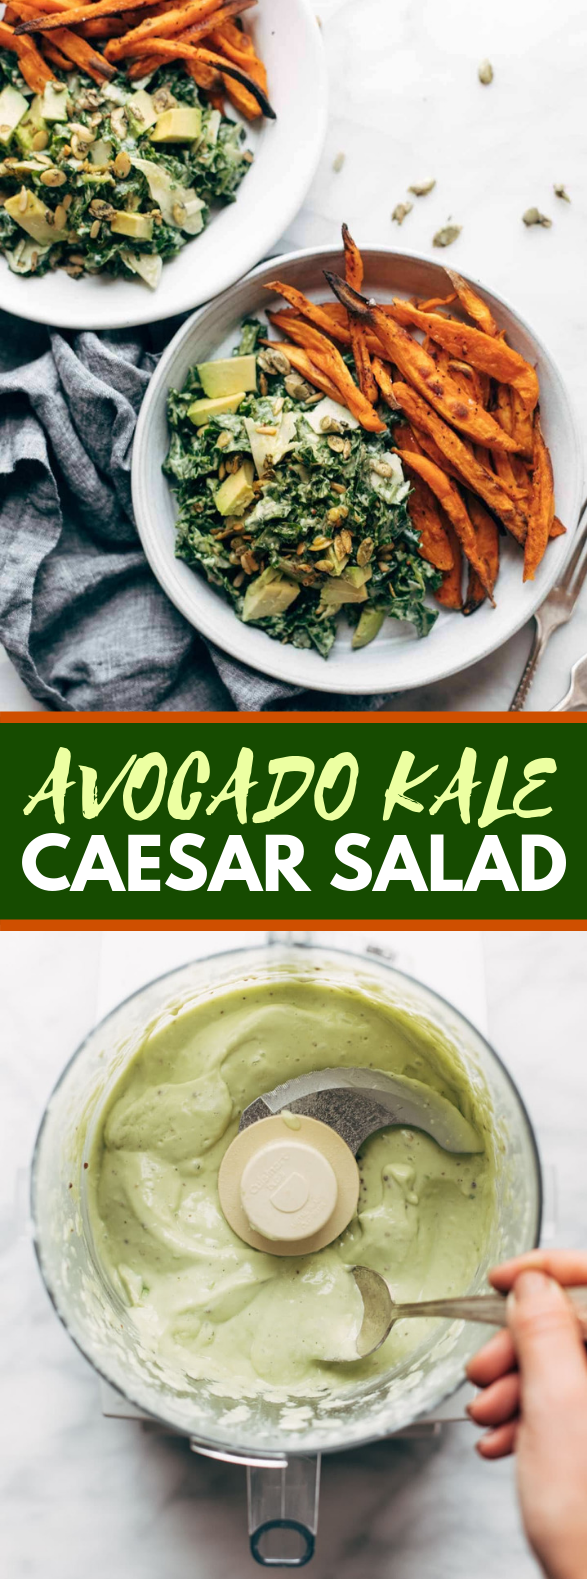 Avocado Kale Caesar Salad + Sweet Potato Fries #vegetarian #glutenfree